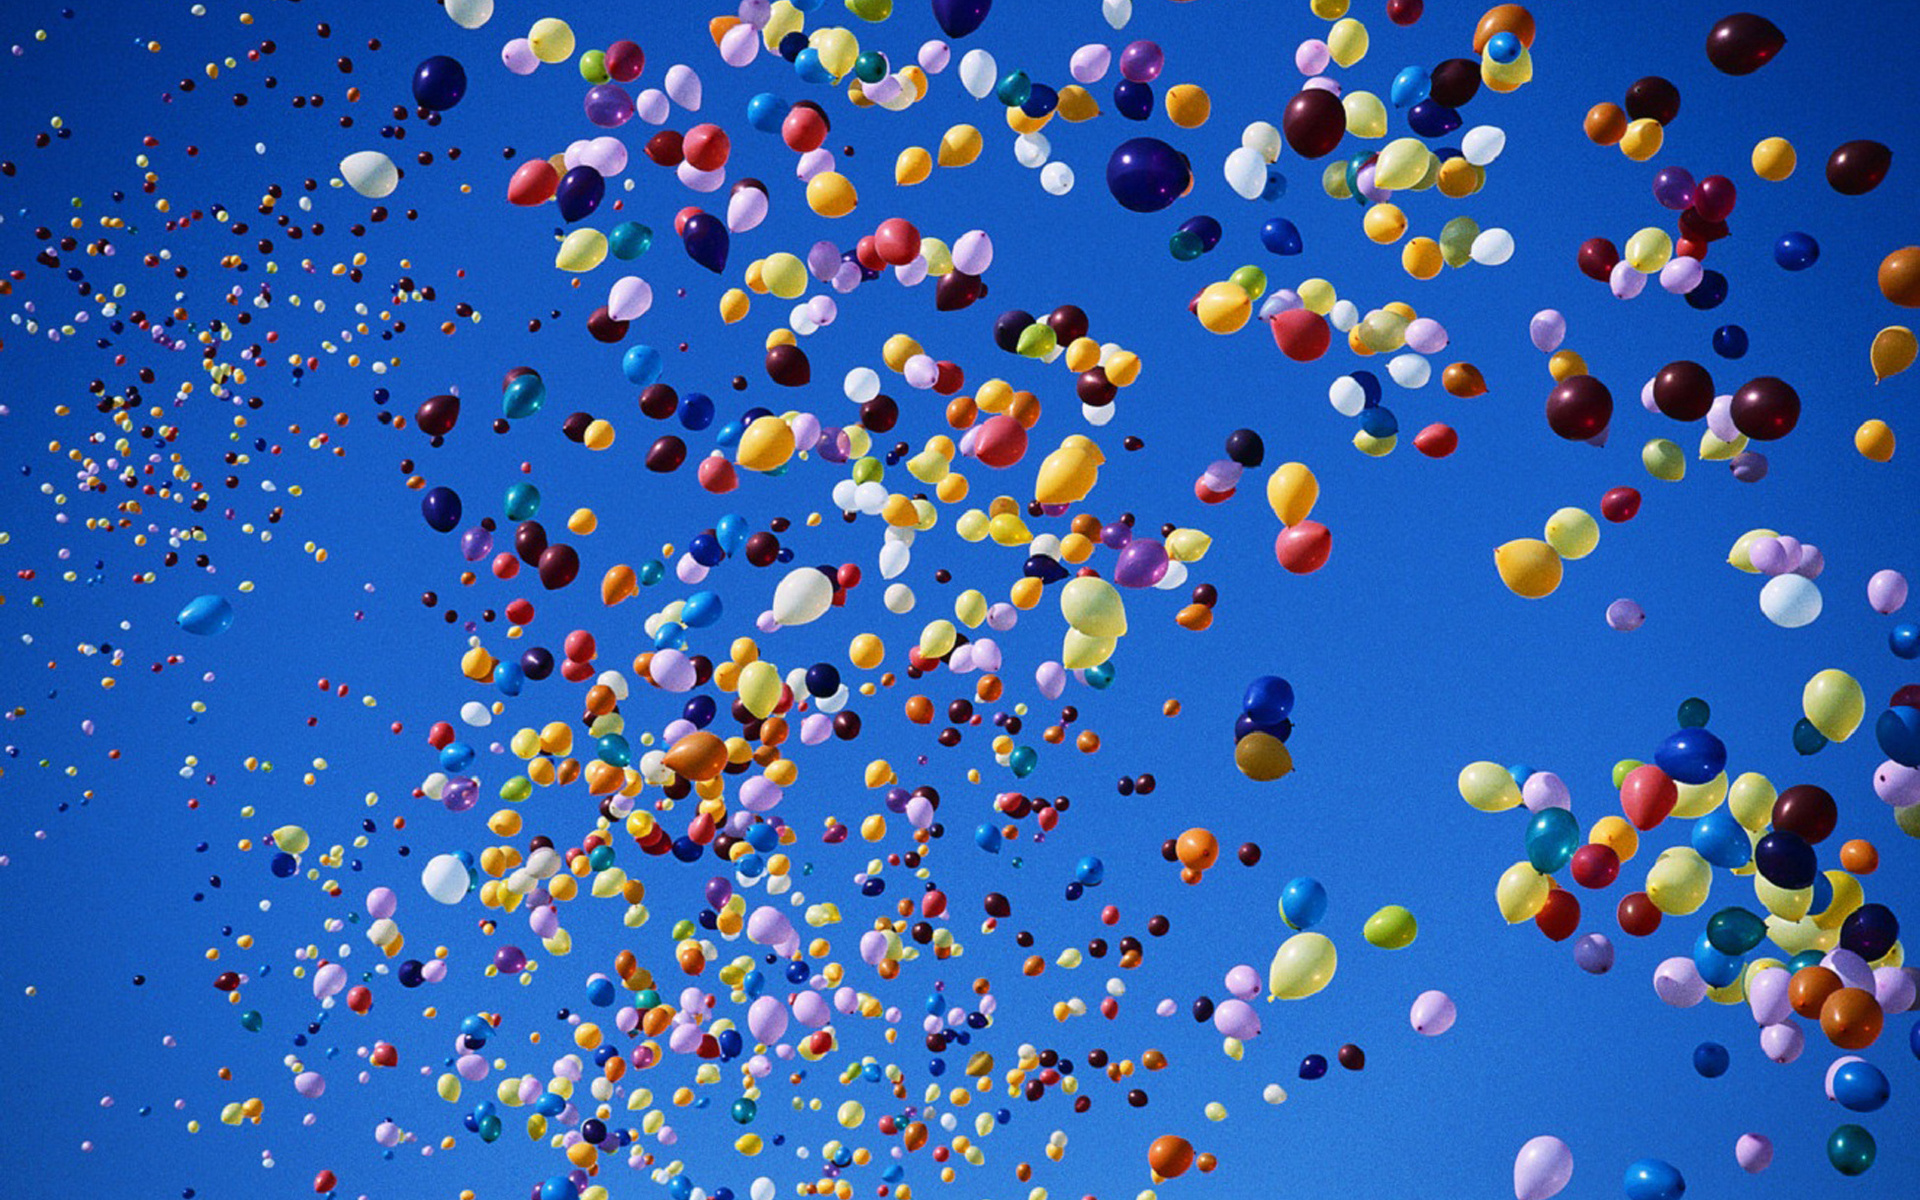 42 Balloon HD Wallpapers | Background Images - Wallpaper Abyss